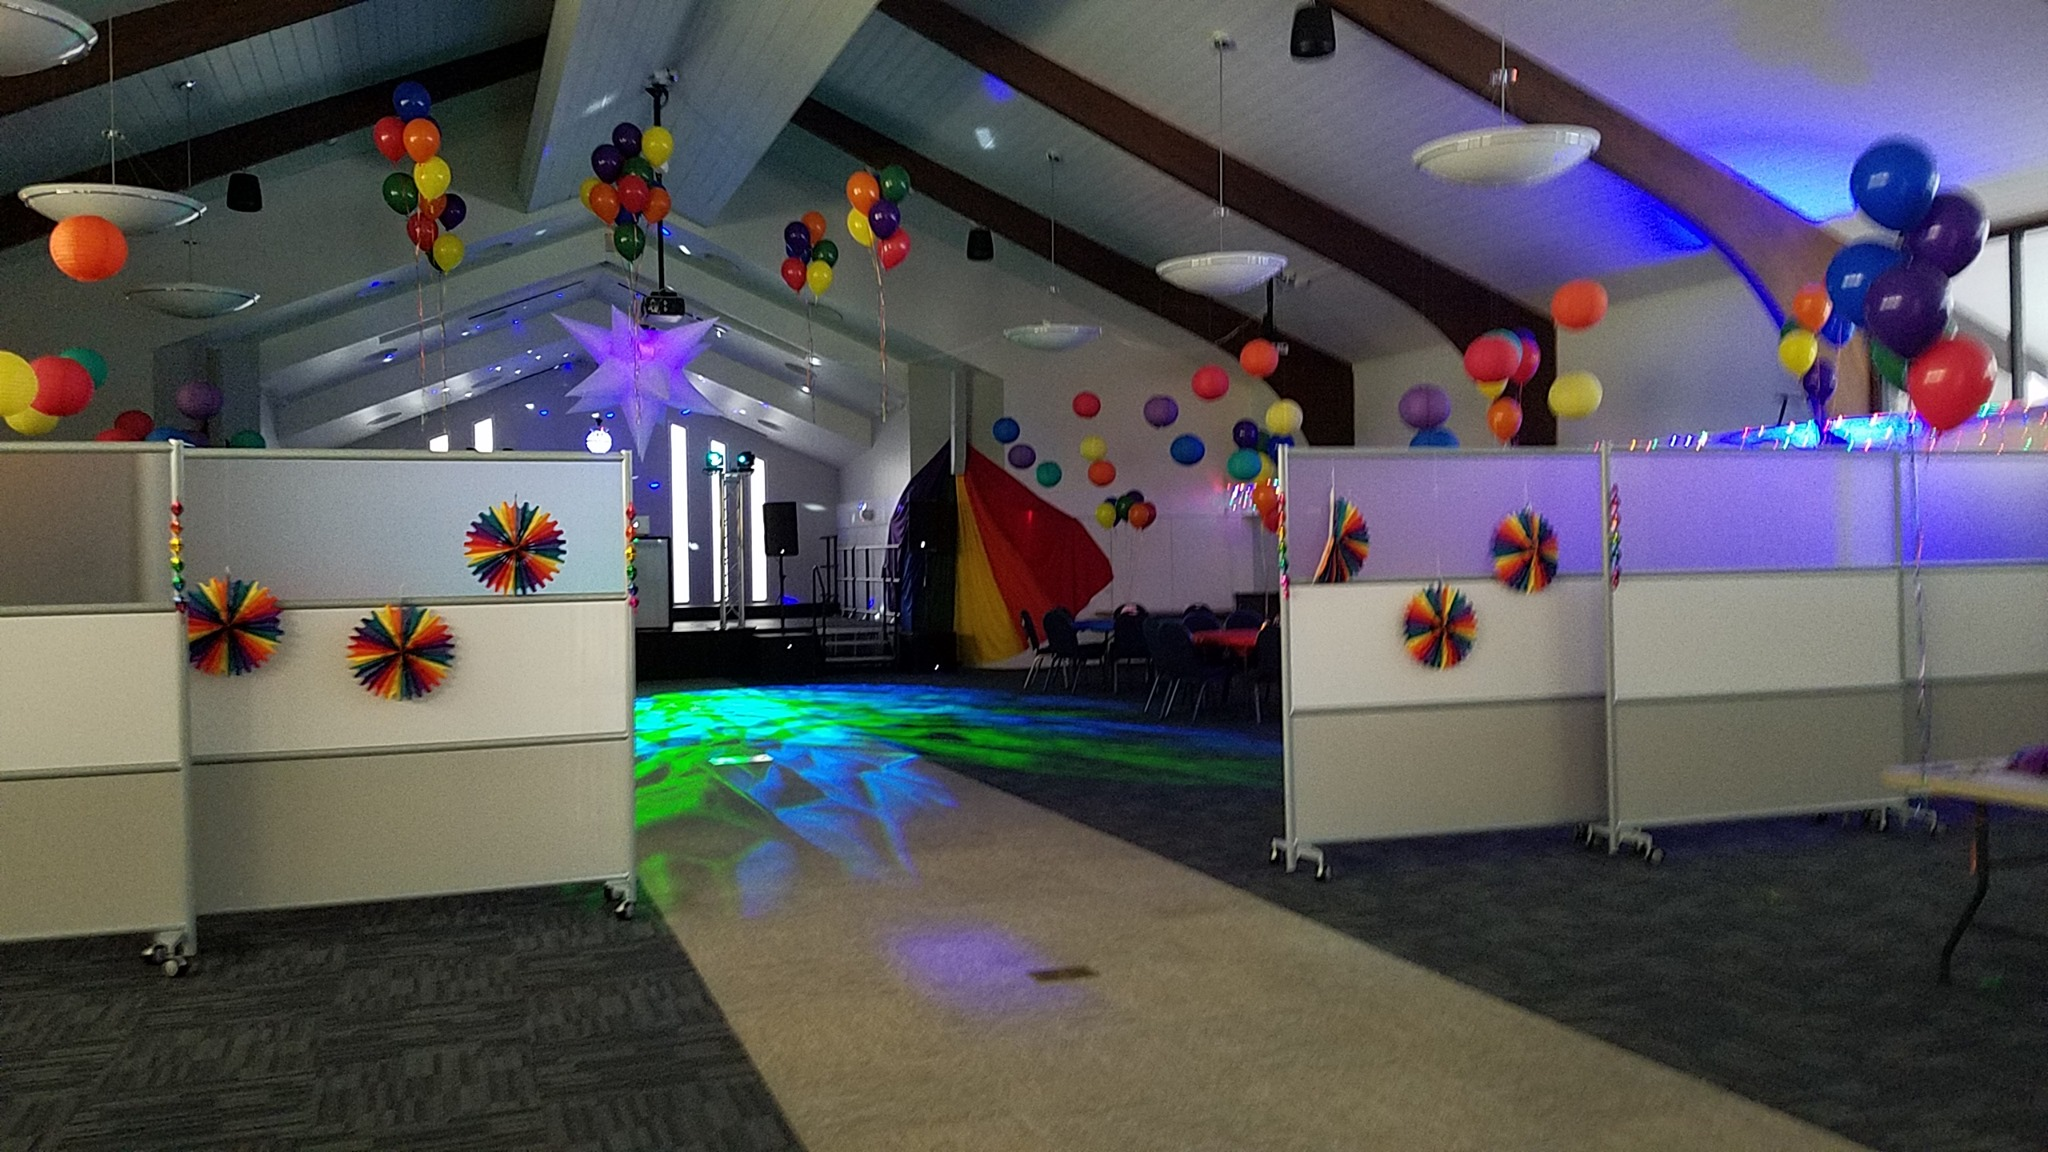 Open room with pride decorations and dim lighting